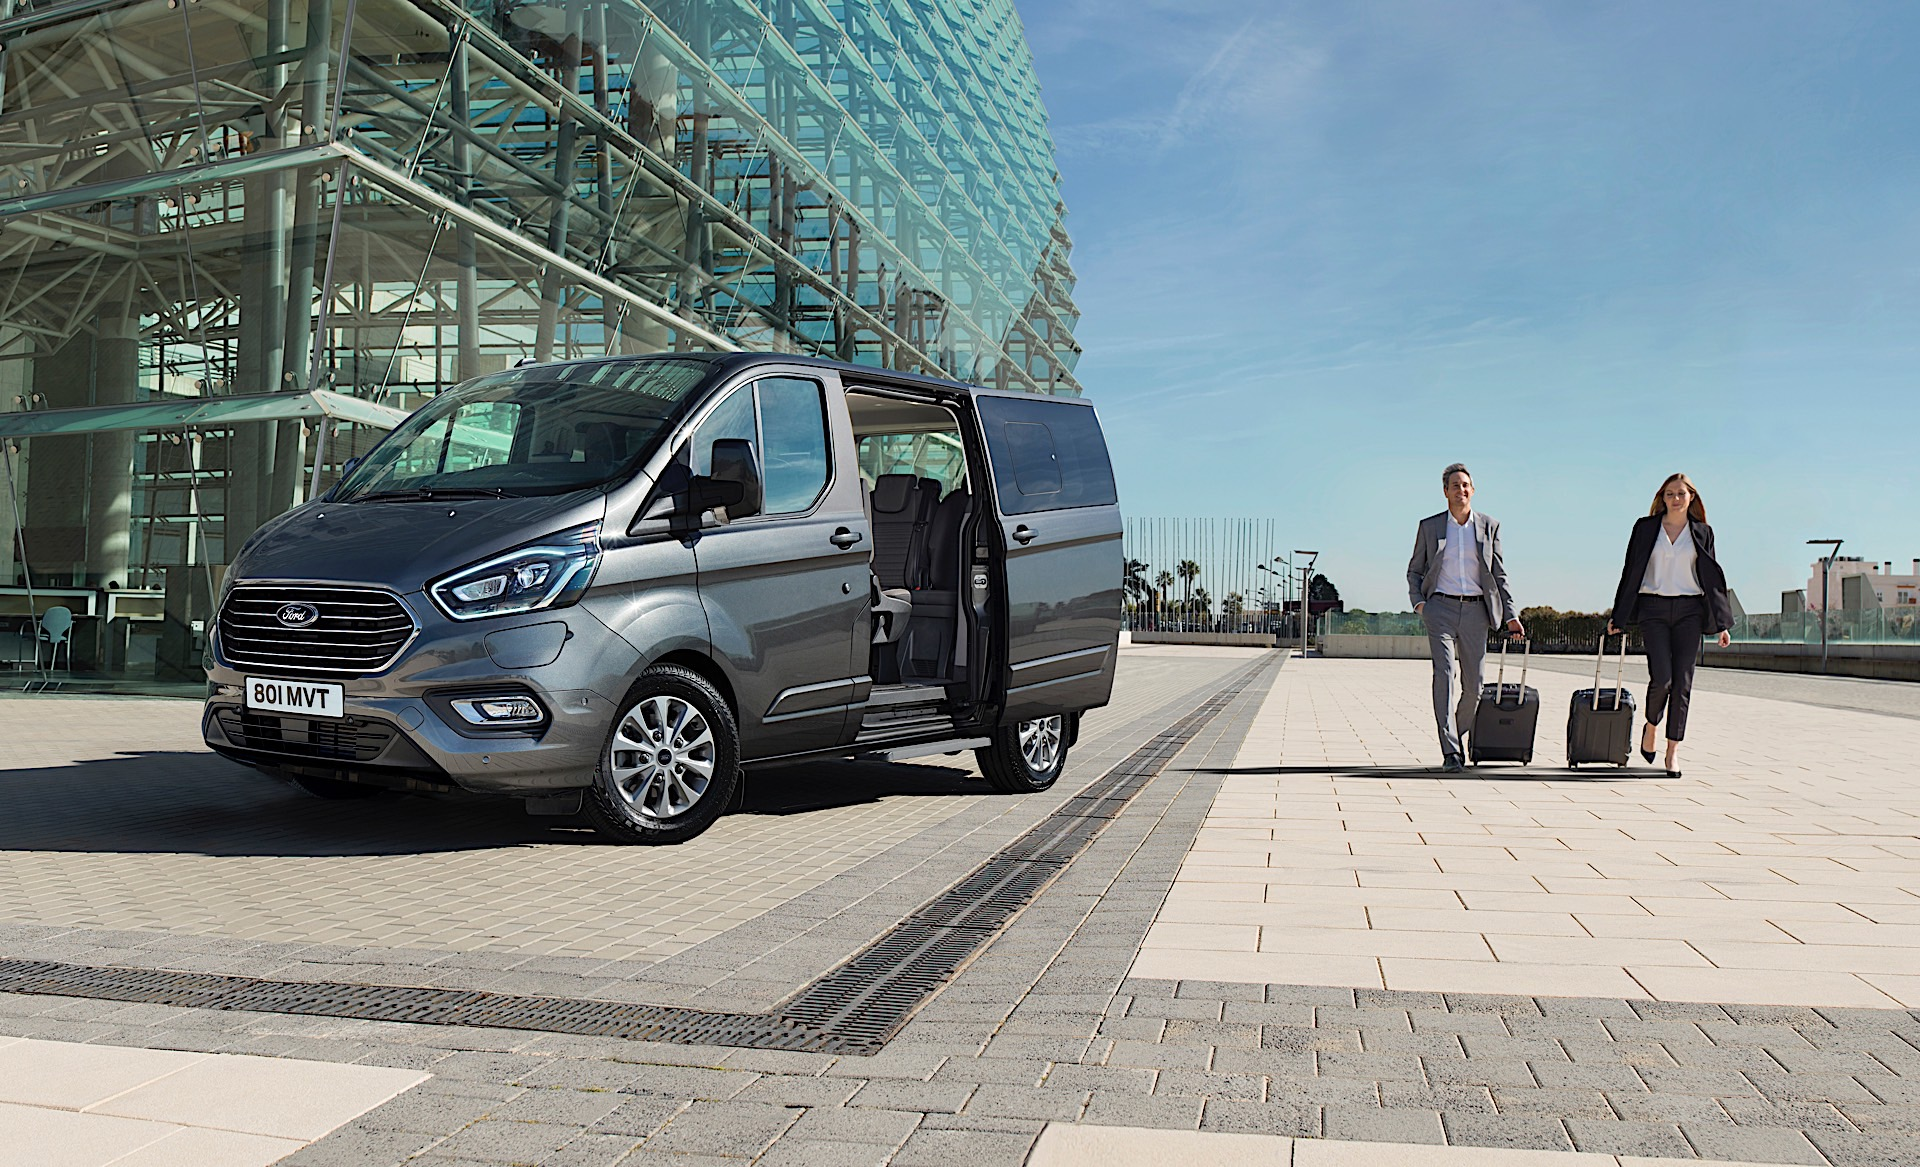 New Ford Plug-In Hybrid Tourneo Van Uses 1 0-Liter EcoBoost